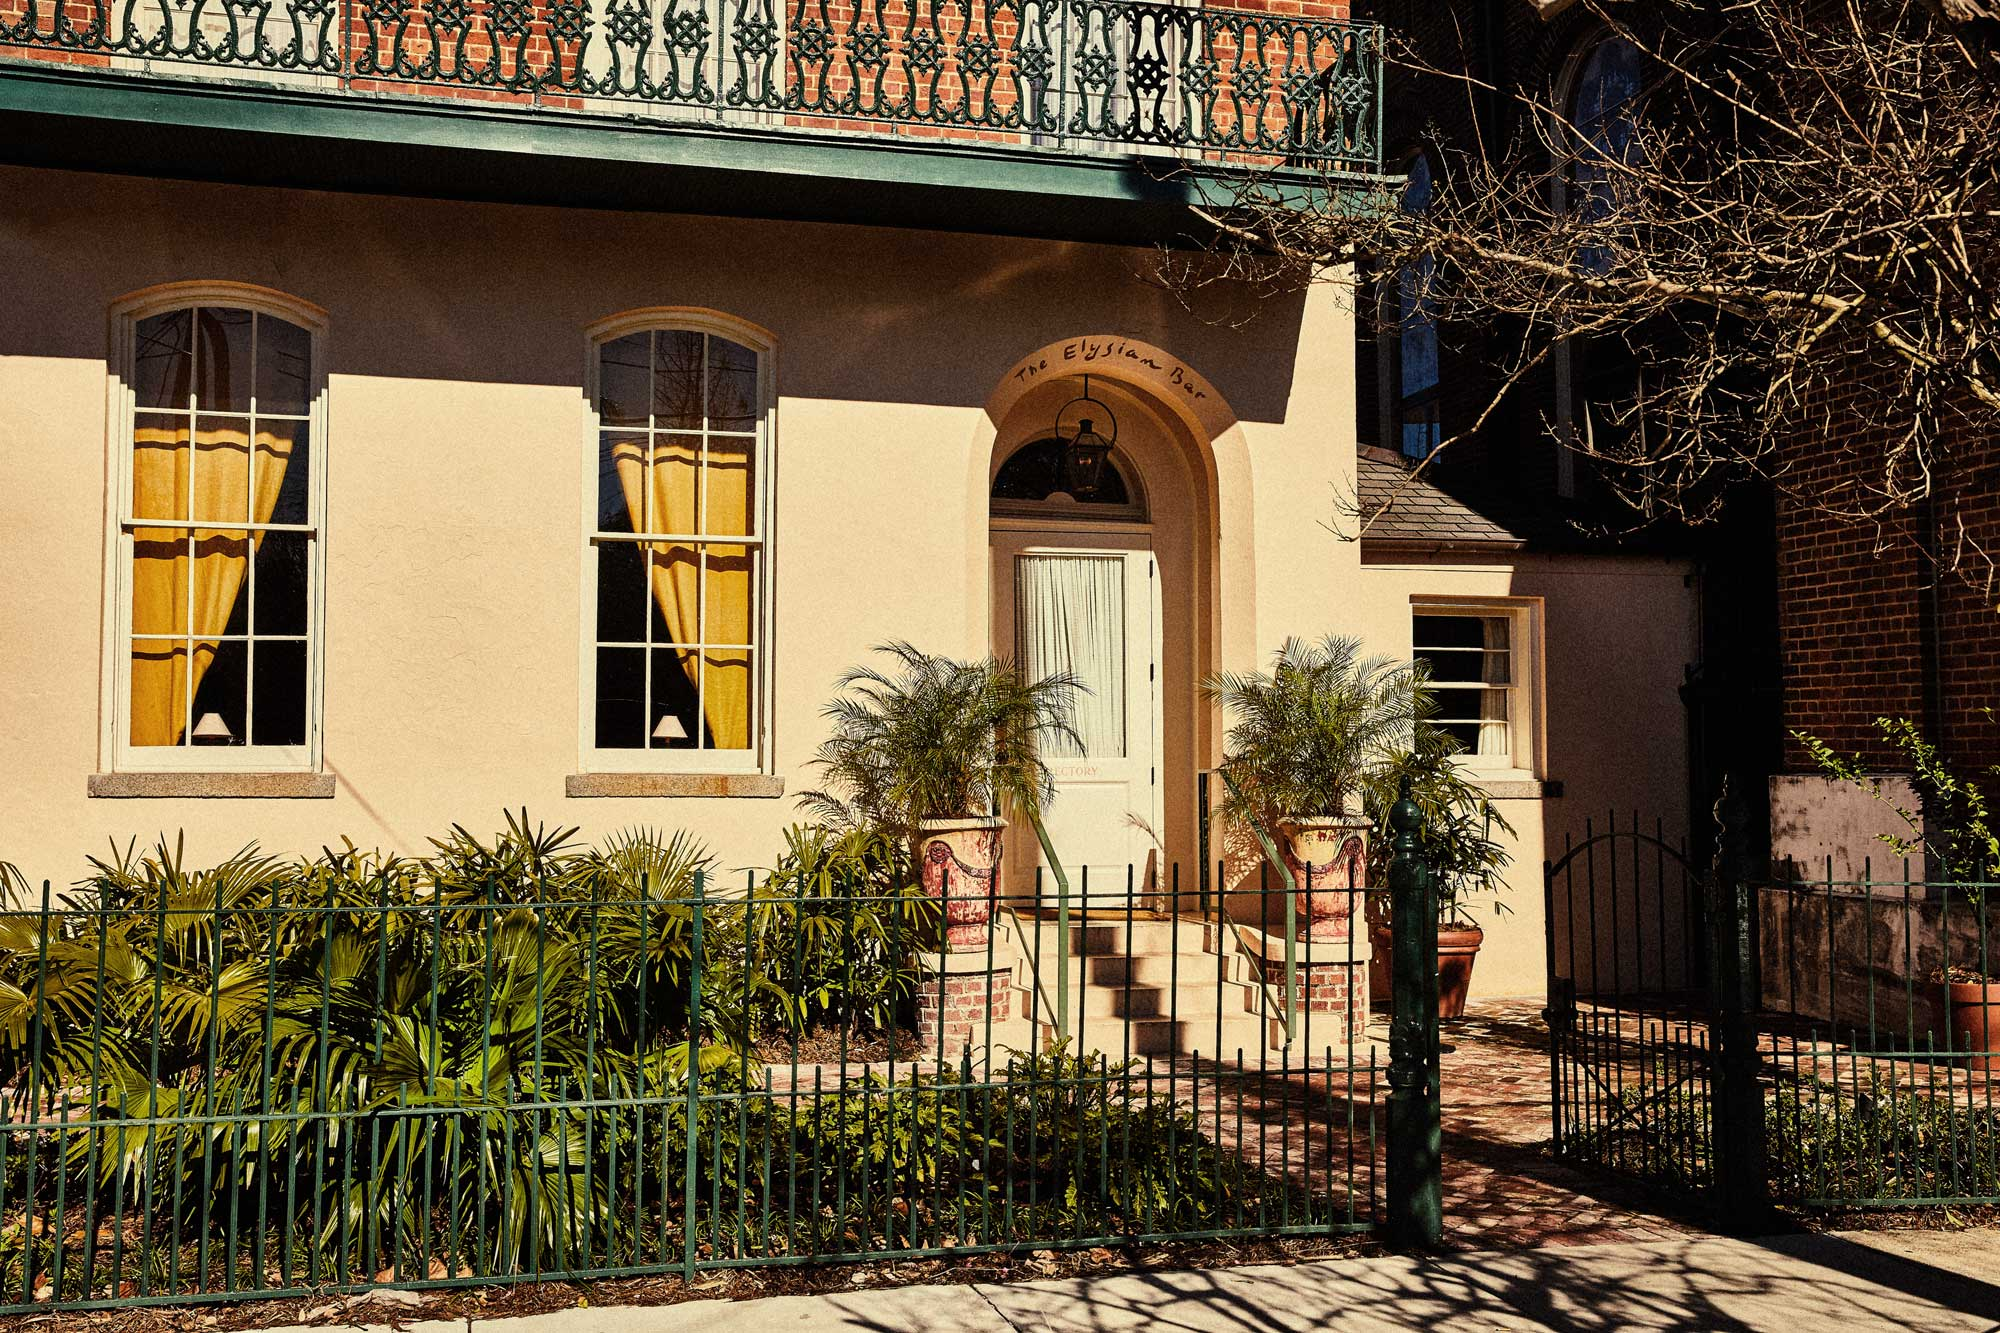 17-CH_Peter_And_Paul_New_Orleans_Rectory_Exterior.jpg